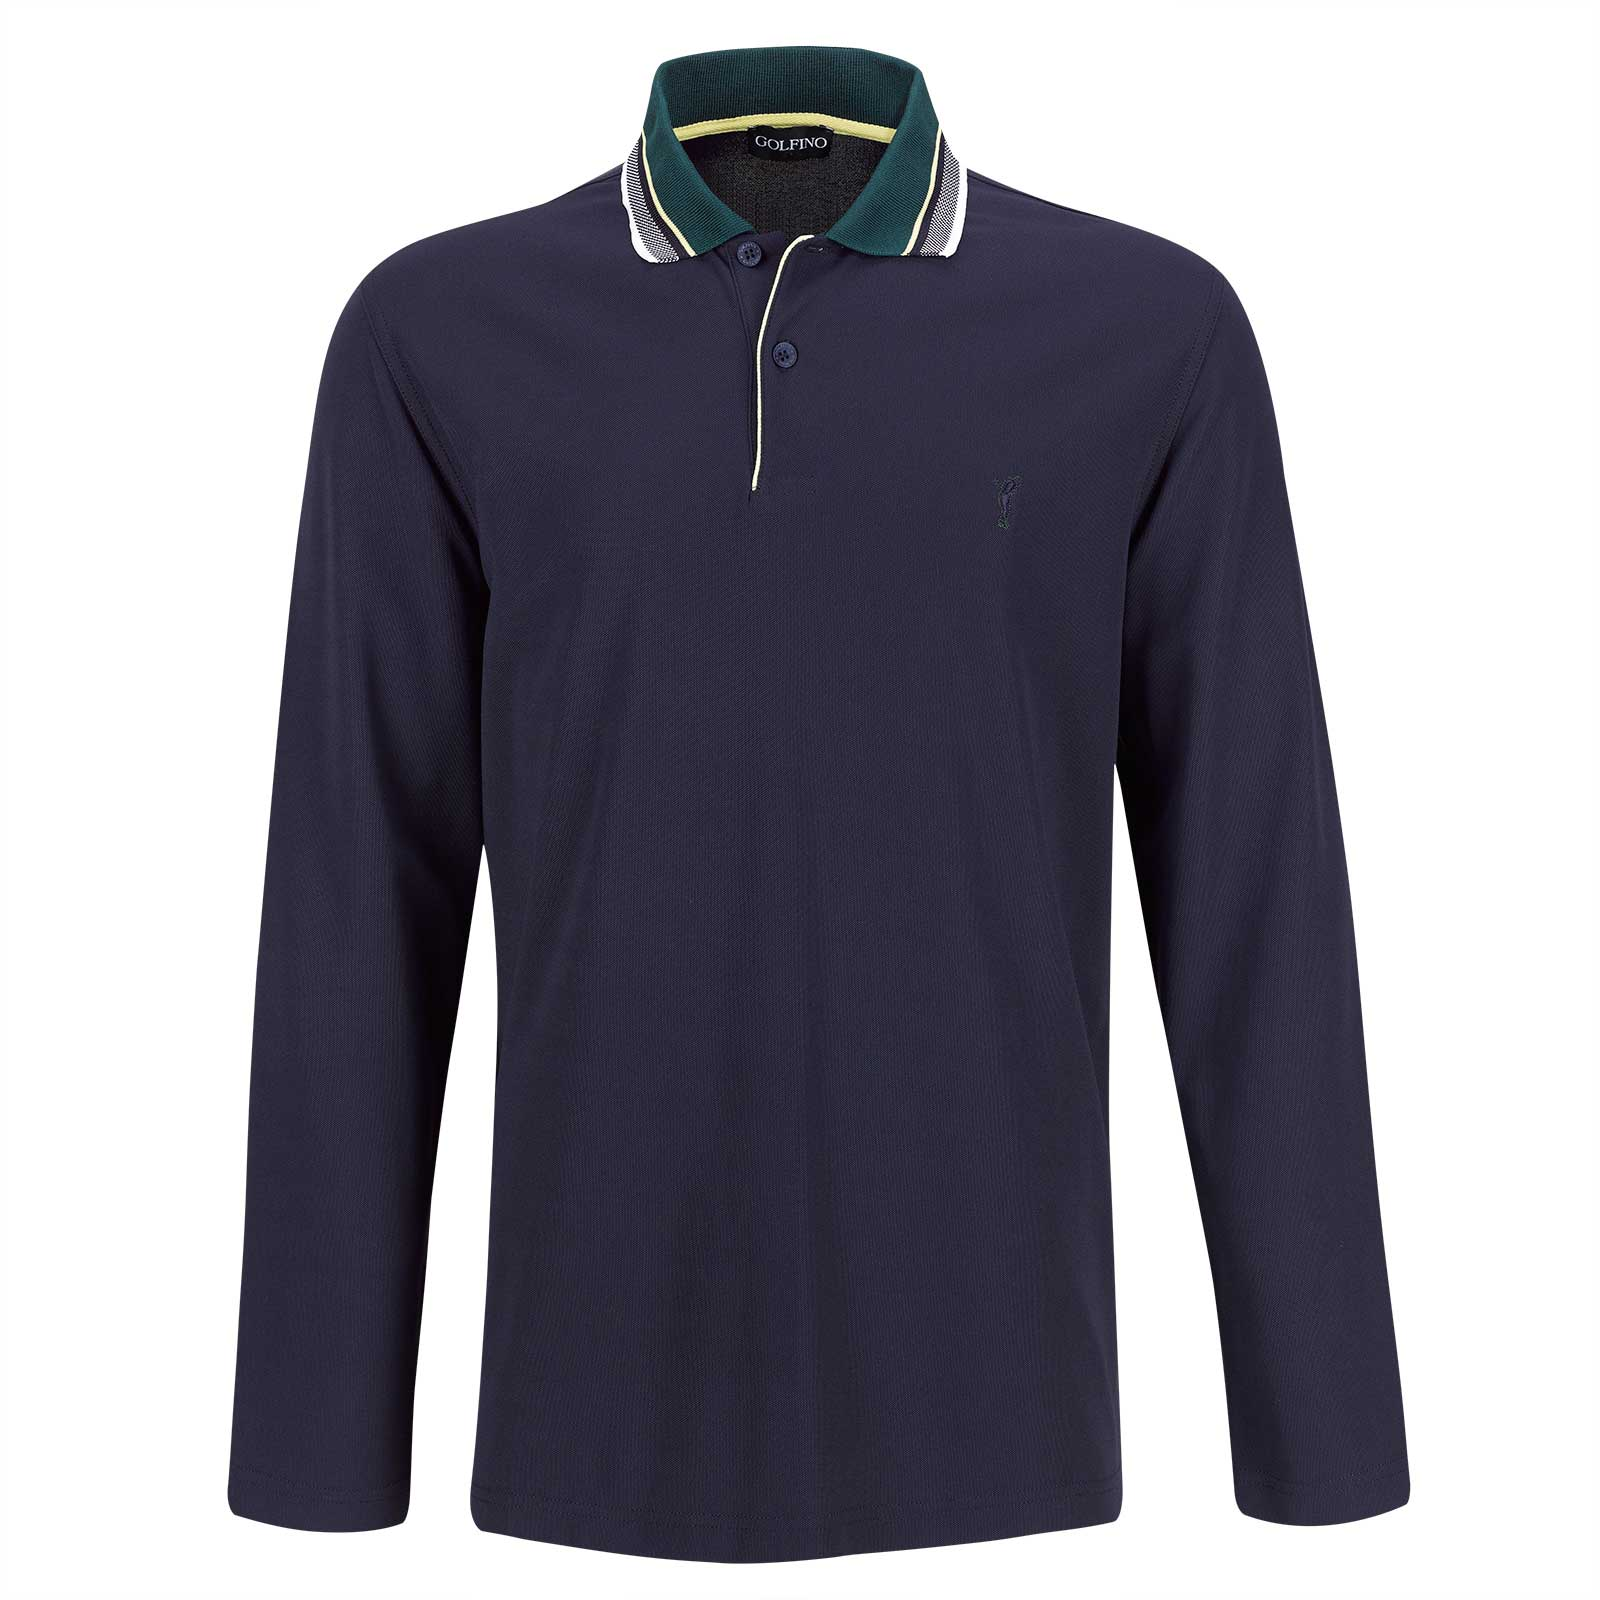 Polo de golf funcional transpirable de manga larga de hombre con Moisture Management